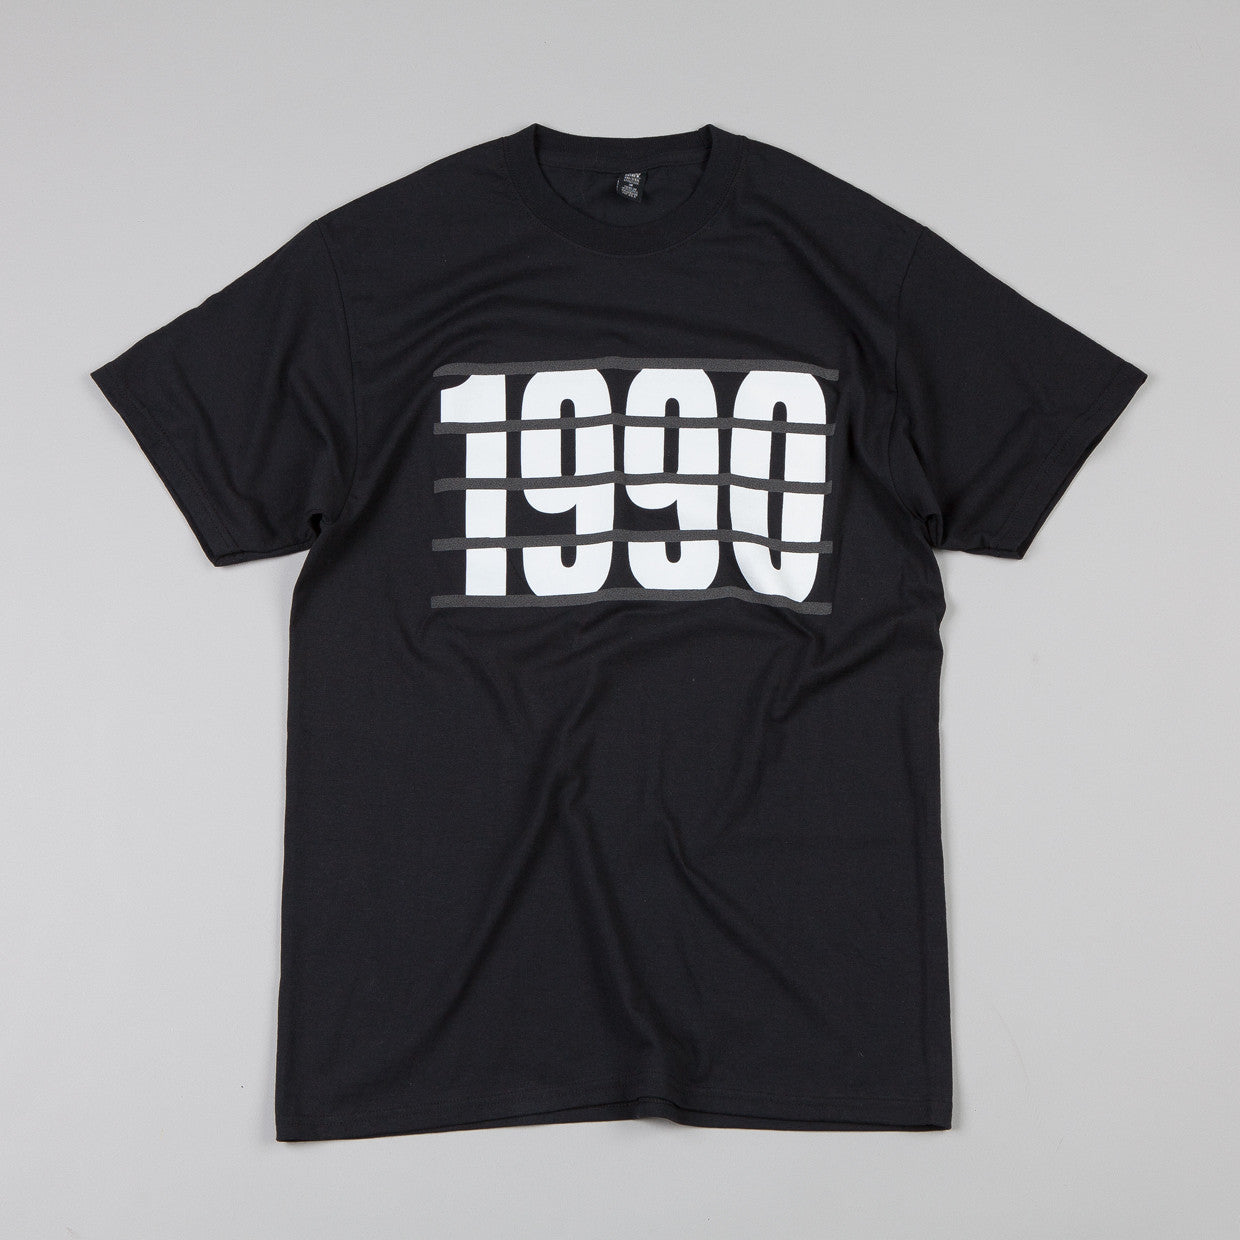 ICNY Behind T Shirt Black